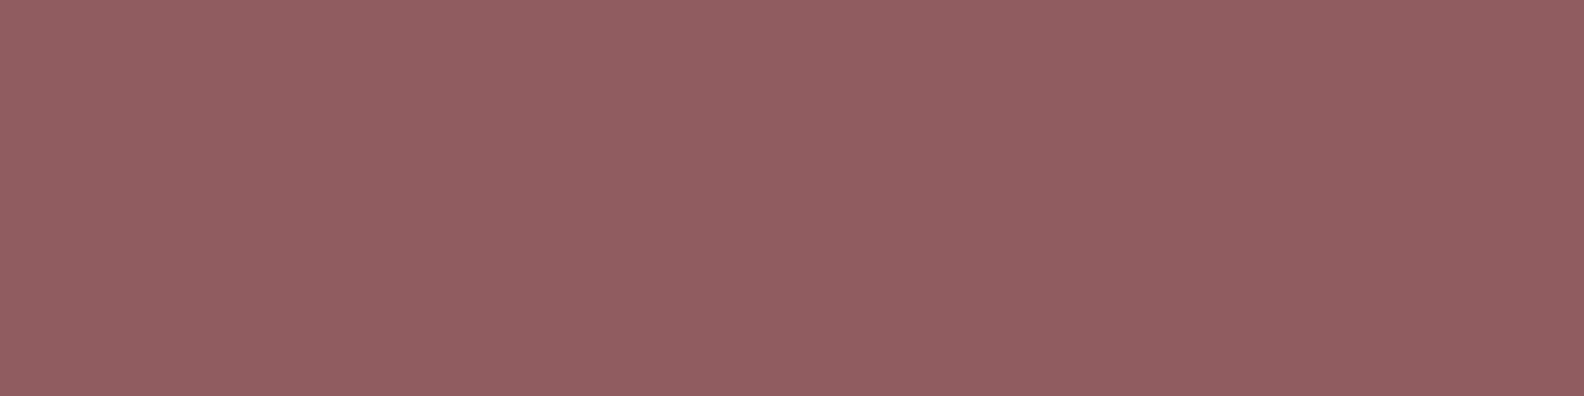 1584x396 Rose Taupe Solid Color Background